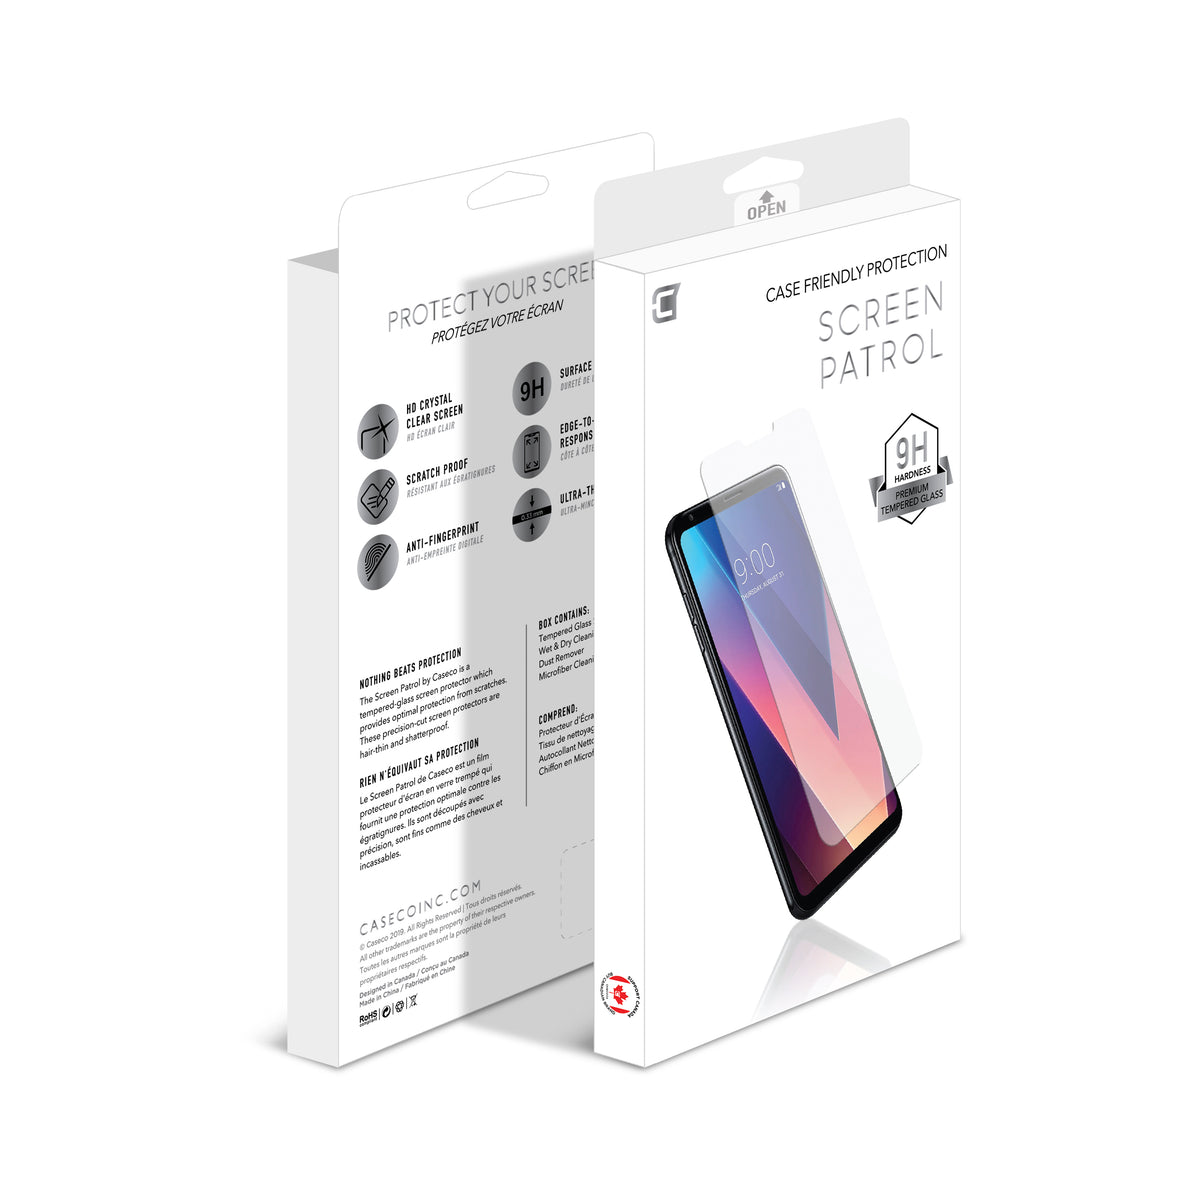 Screen Patrol - Tempered Glass - Galaxy Grand Prime (BULK ONLY)